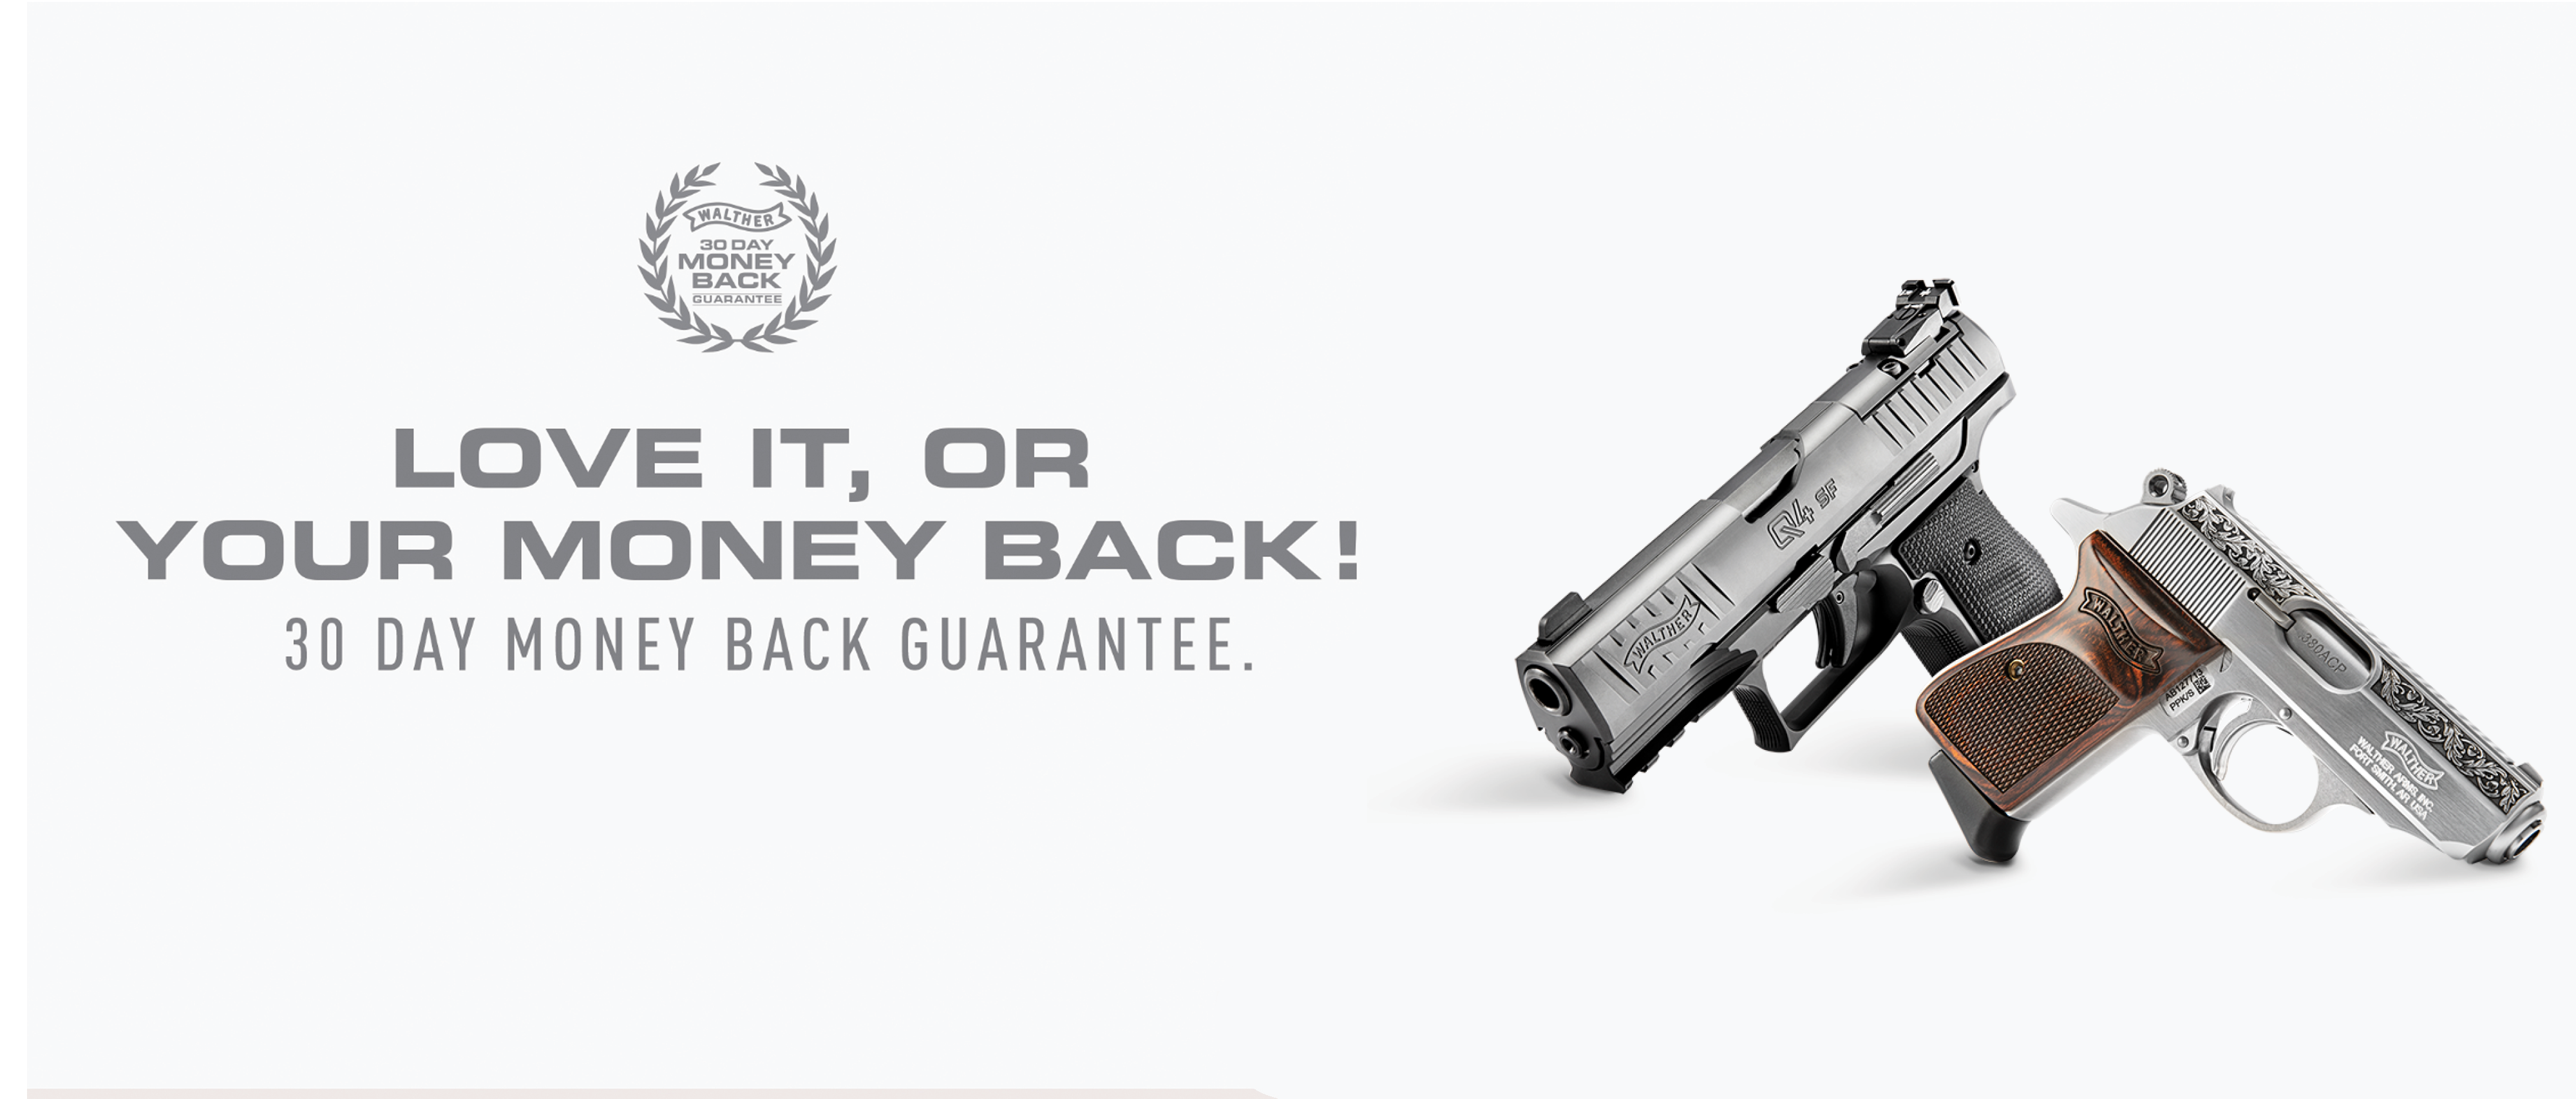 Walther Love or your money back